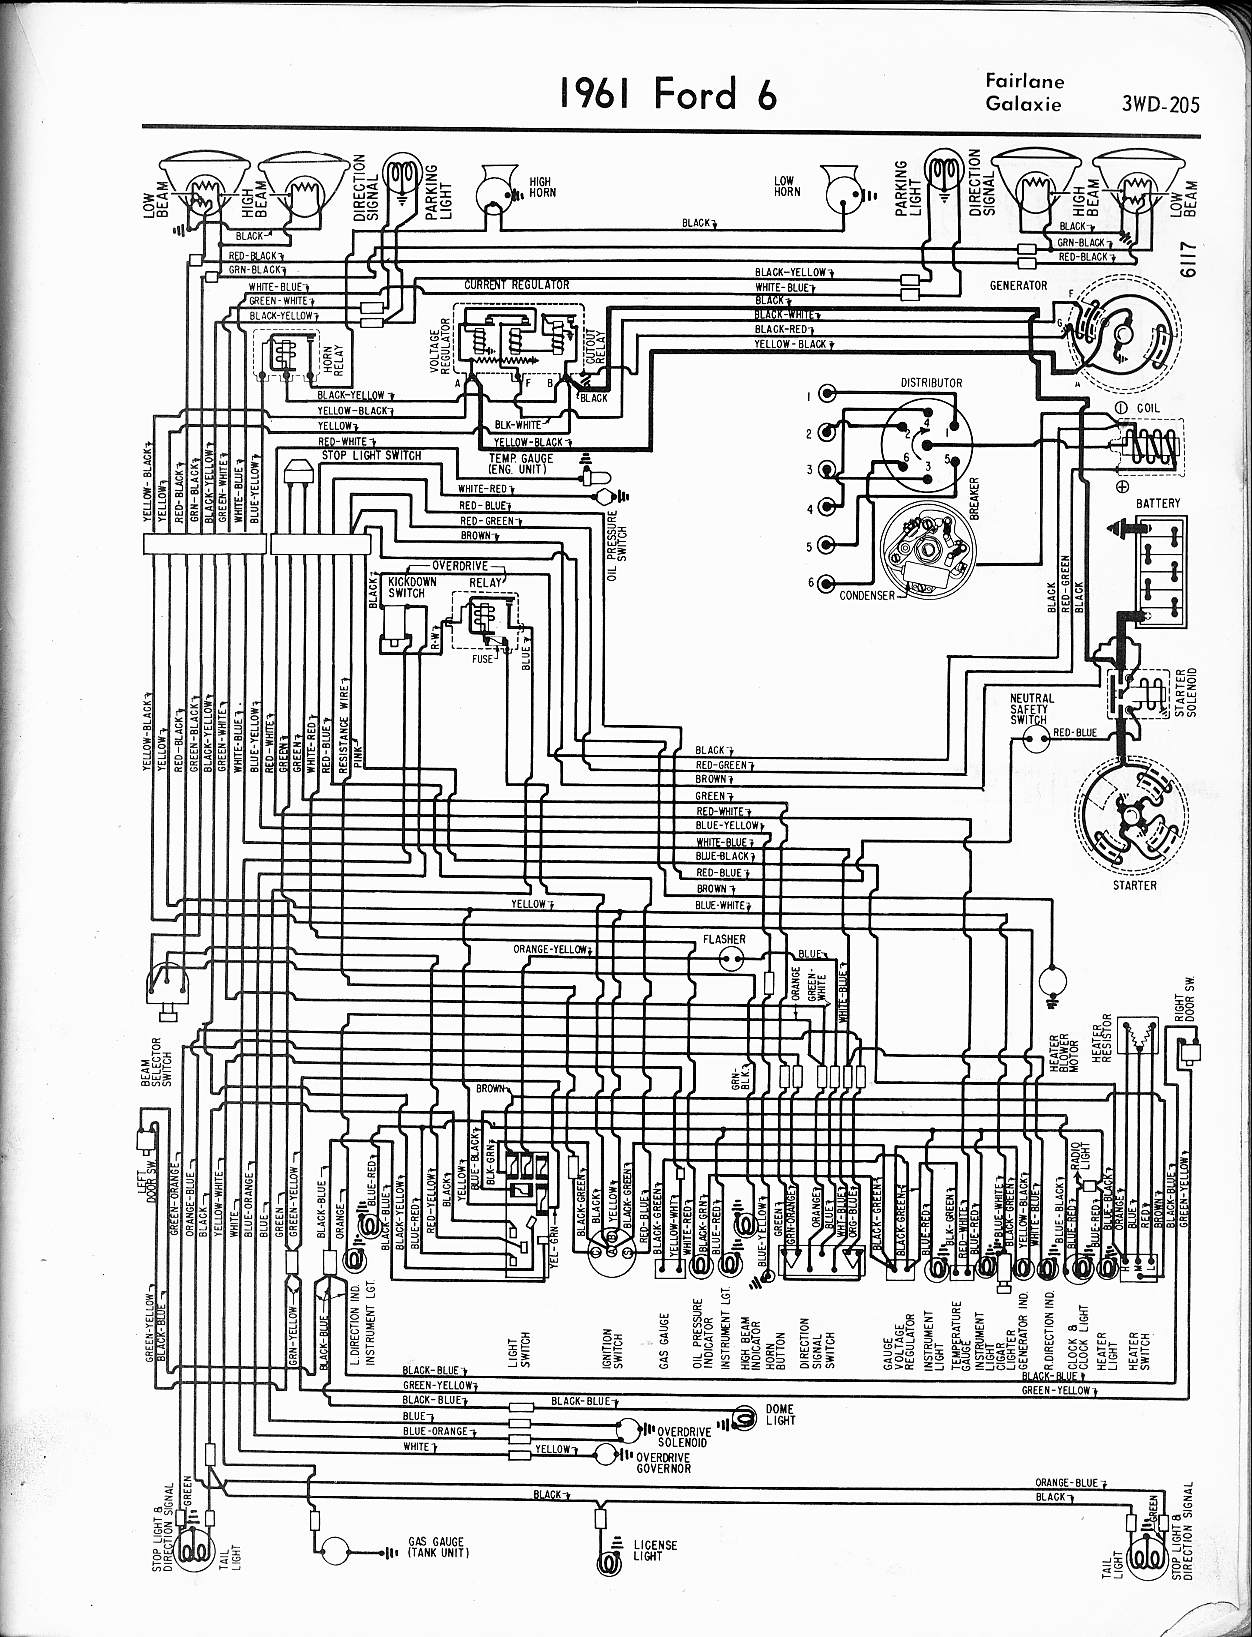 Ford Thunderbird Wiring Diagram On Wiring Diagram For 1974 Ford F100